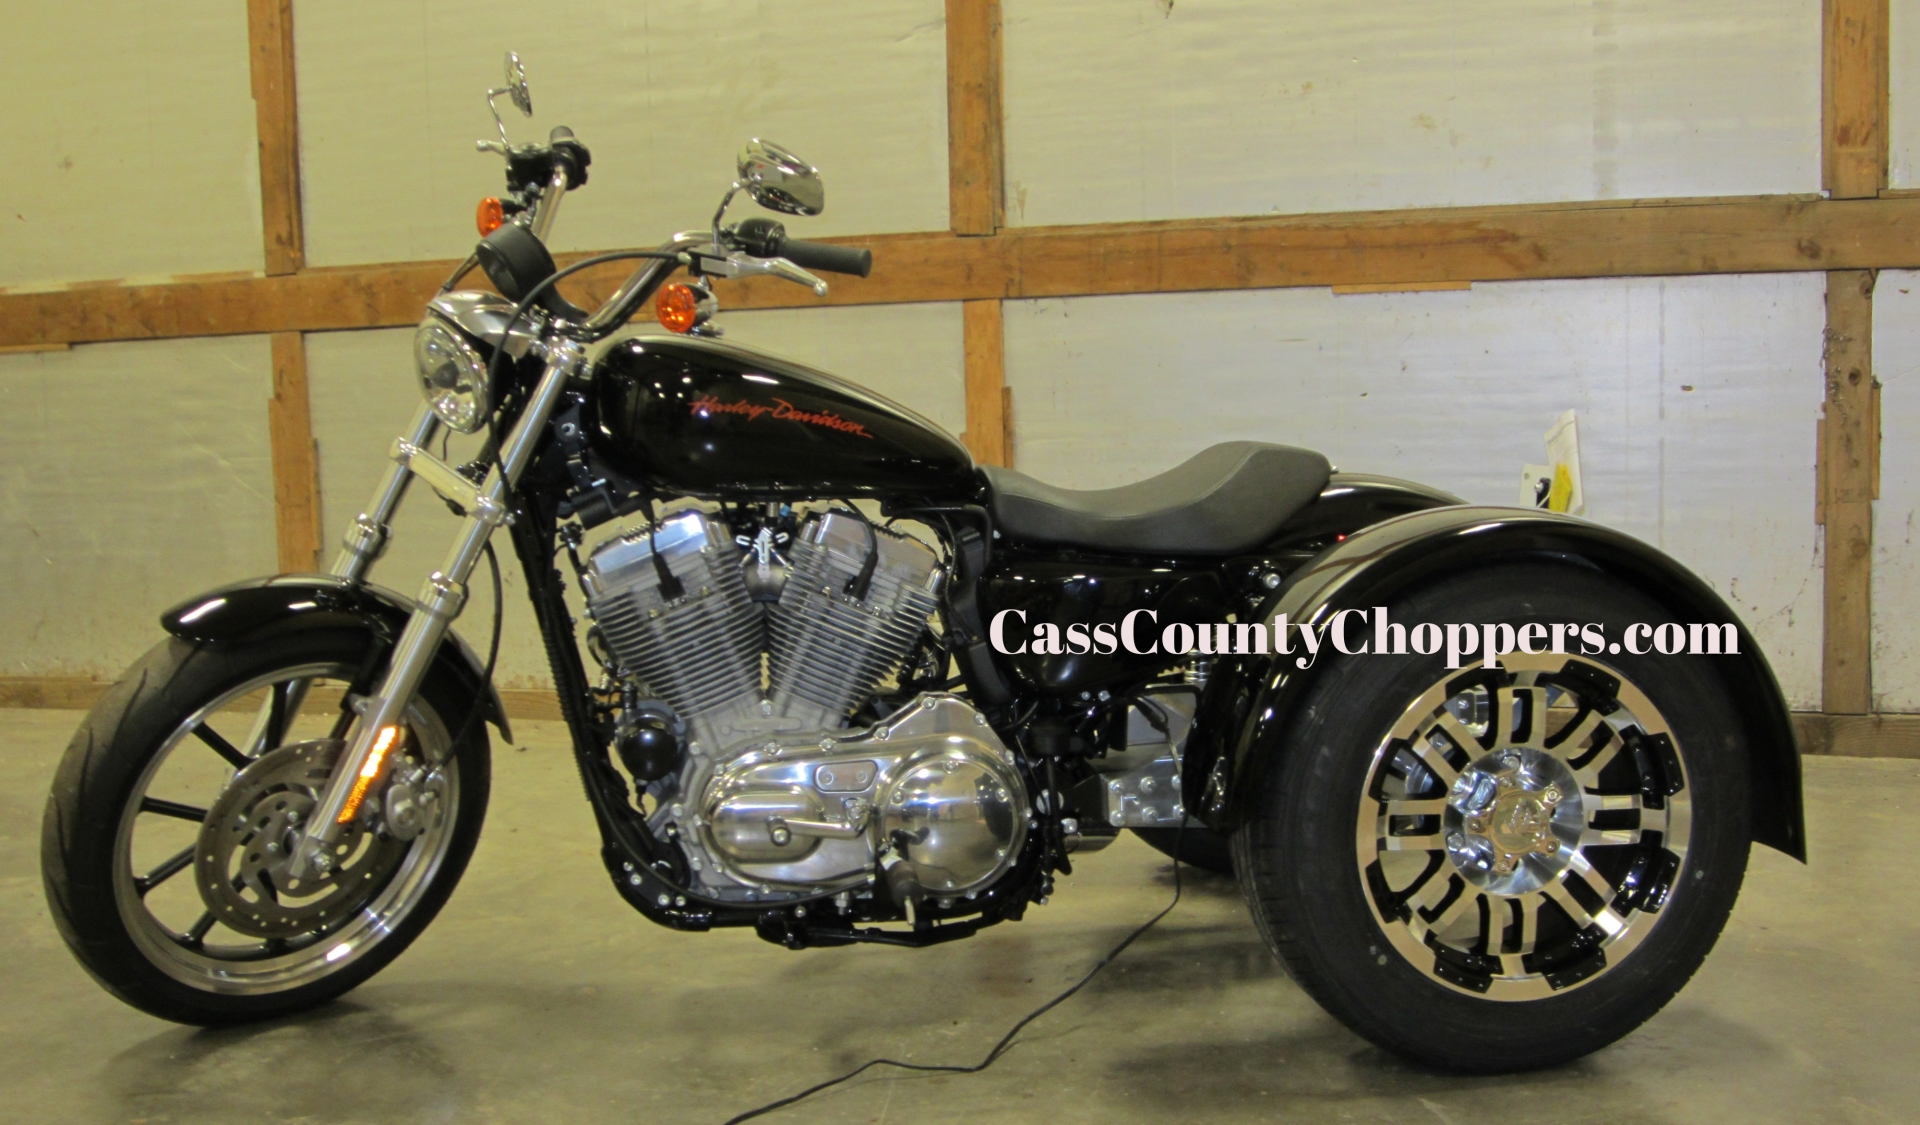 Black Harley Sportster motorcycle converted to trike with conversion kit.